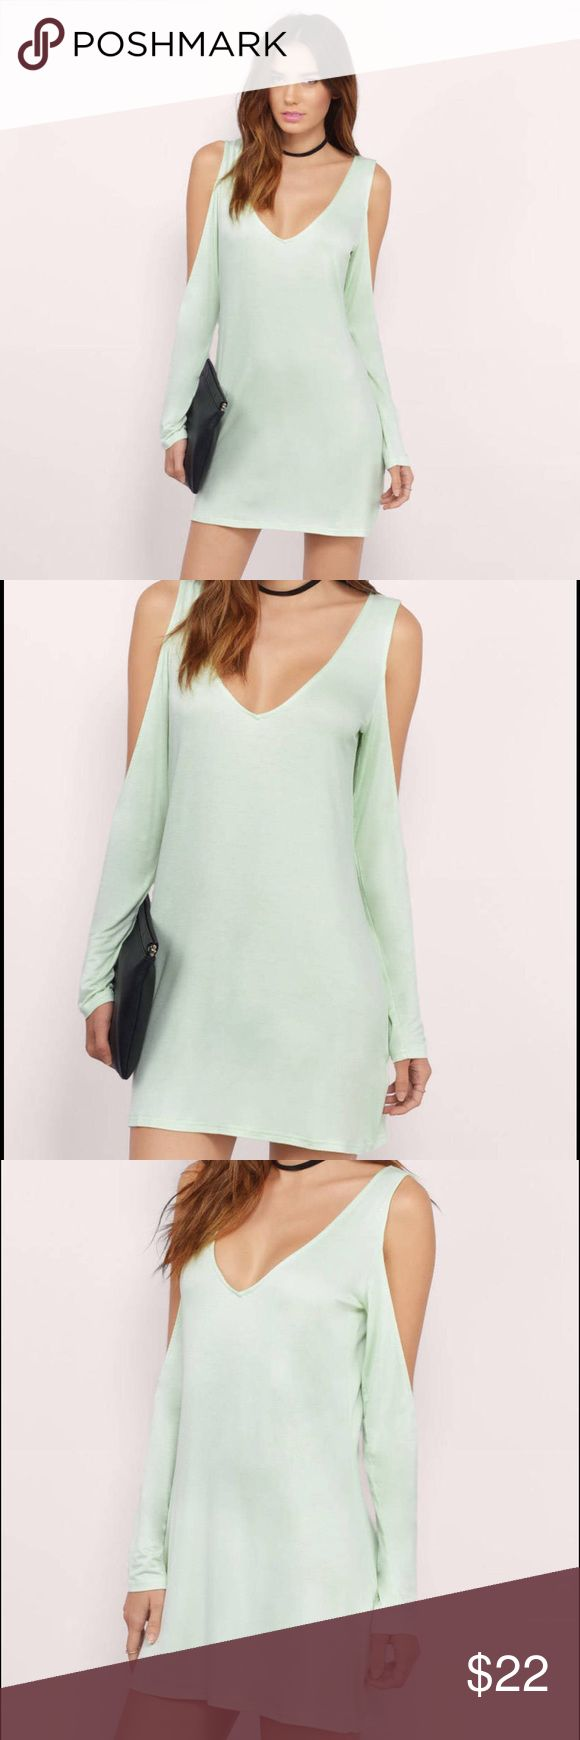 NWOT TOBI Missy Dress Brand new, never worn mint TOBI cold shoulder Missy Dress. In perfect condition, and tried on once but was just too big for me!! Tobi Dresses Long Sleeve